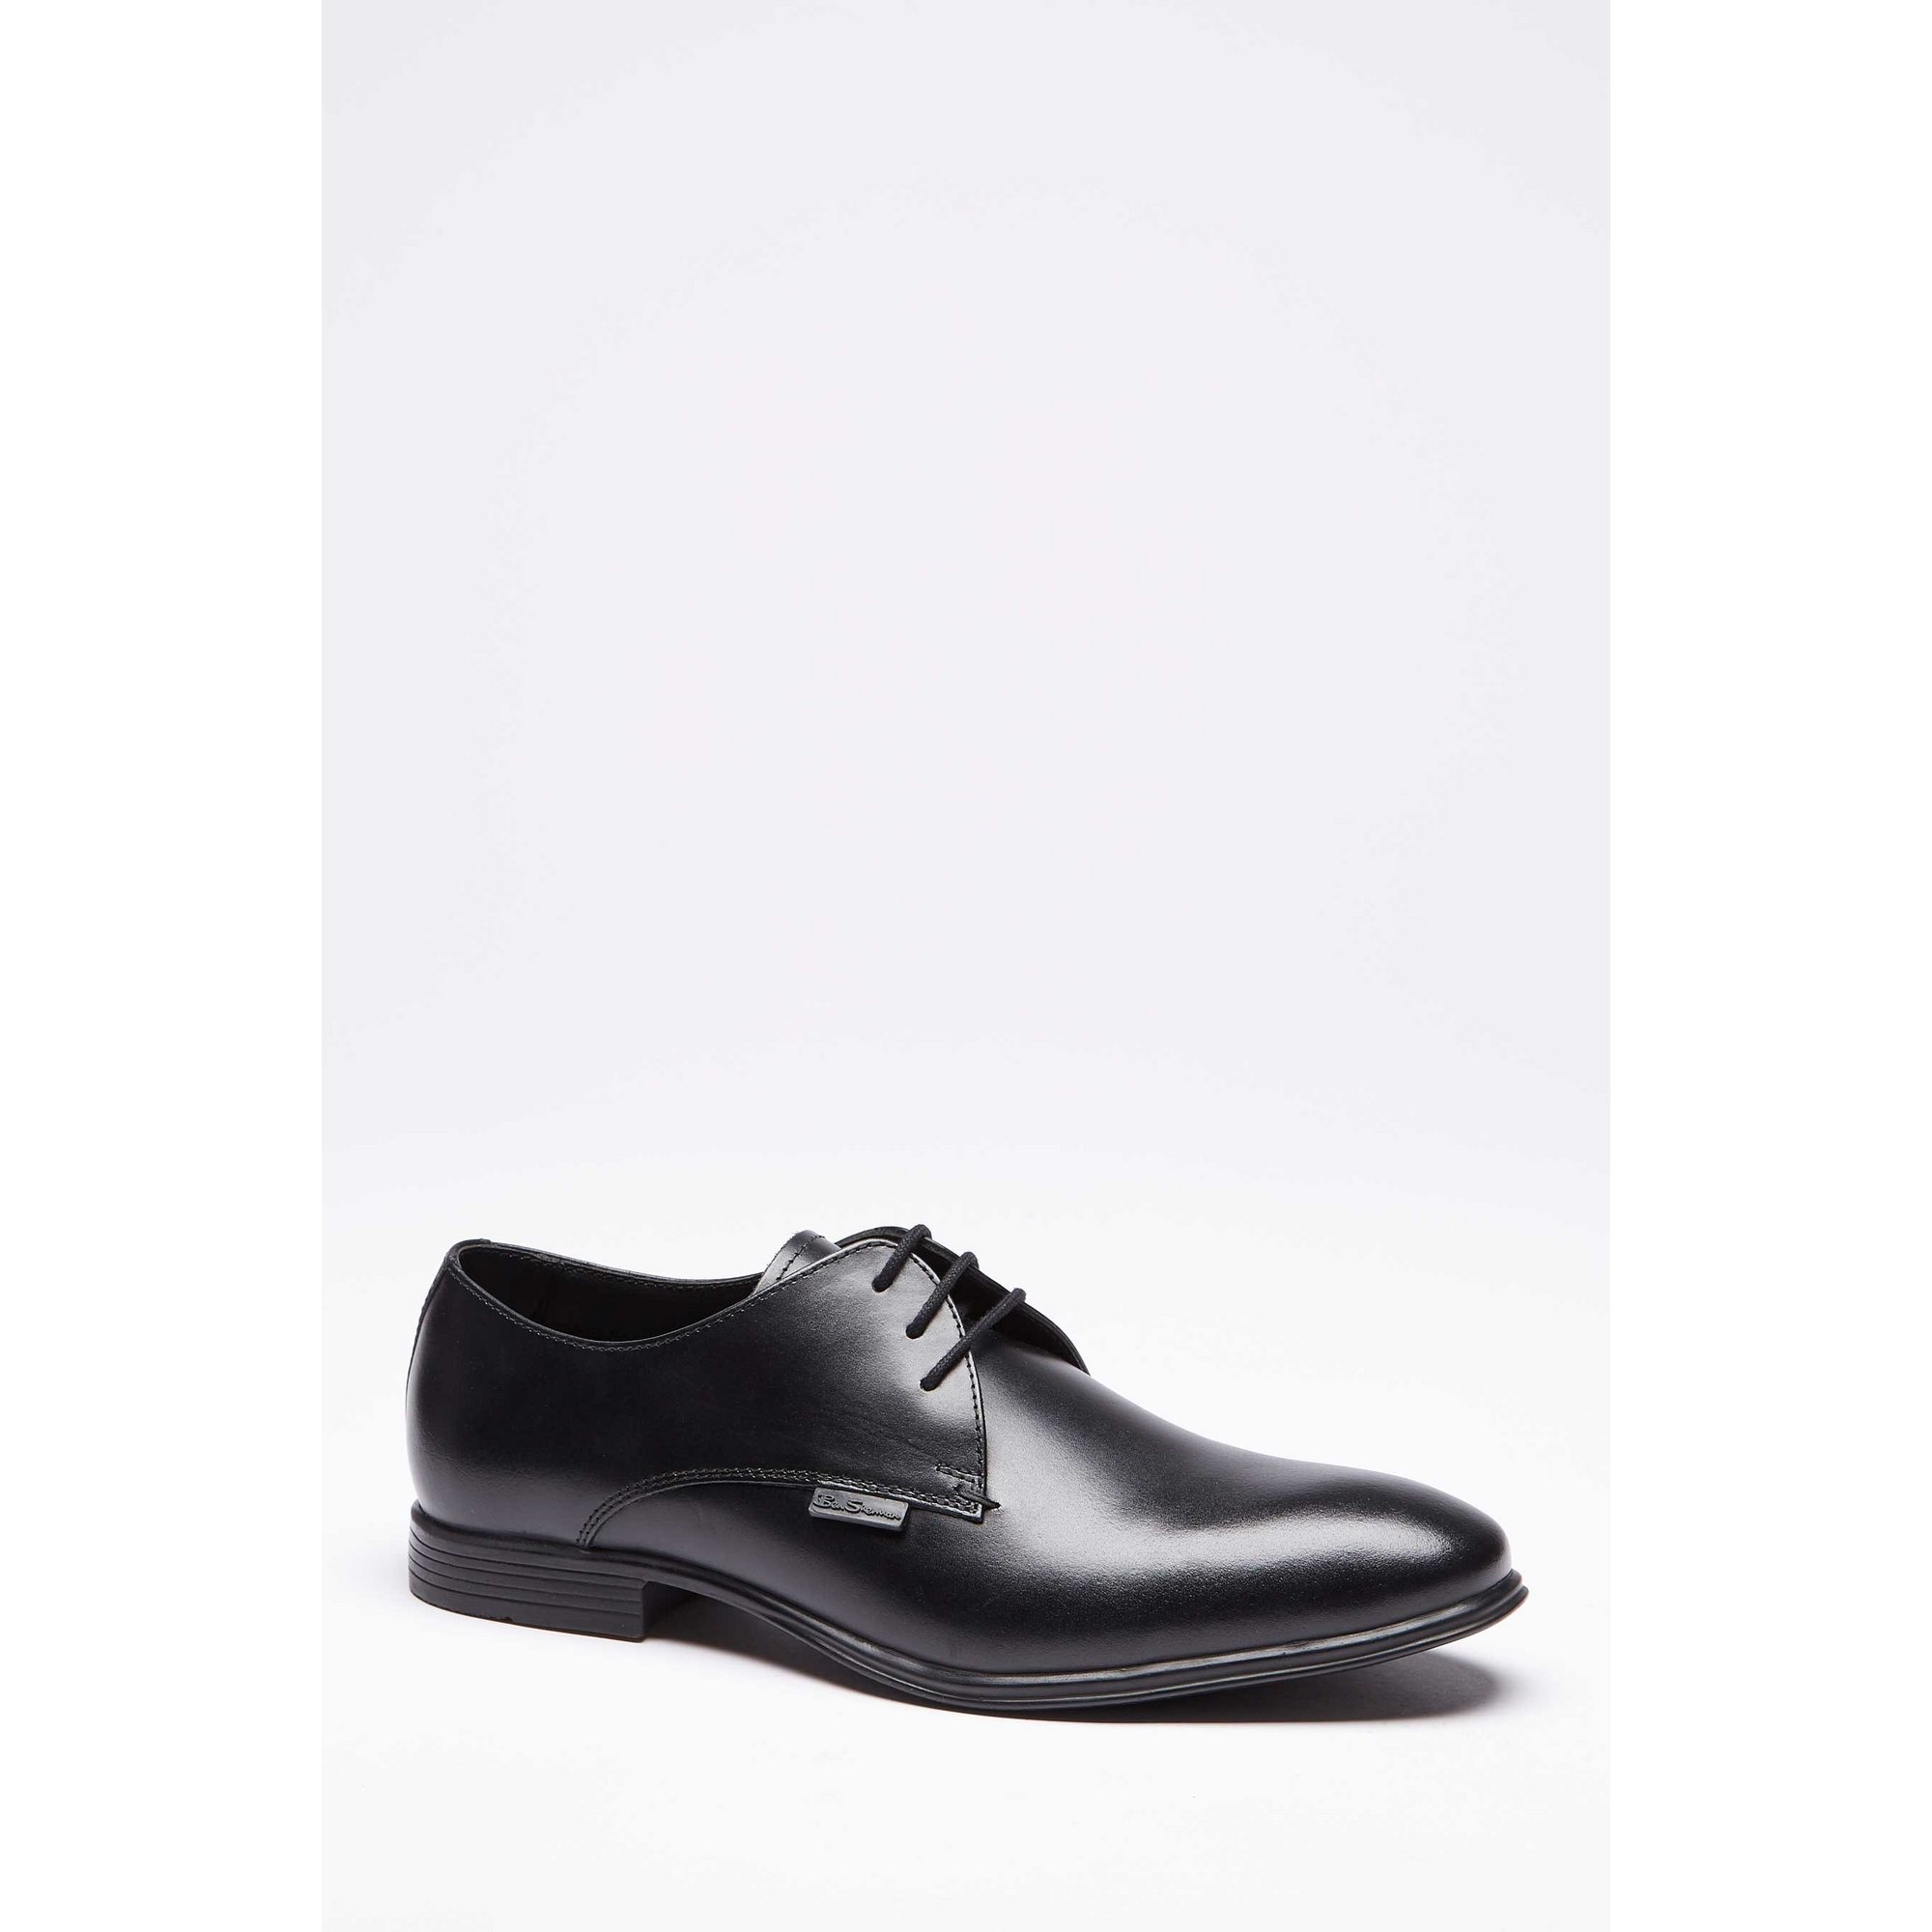 Image of Ben Sherman Black Leather Lace Up Derby Shoes